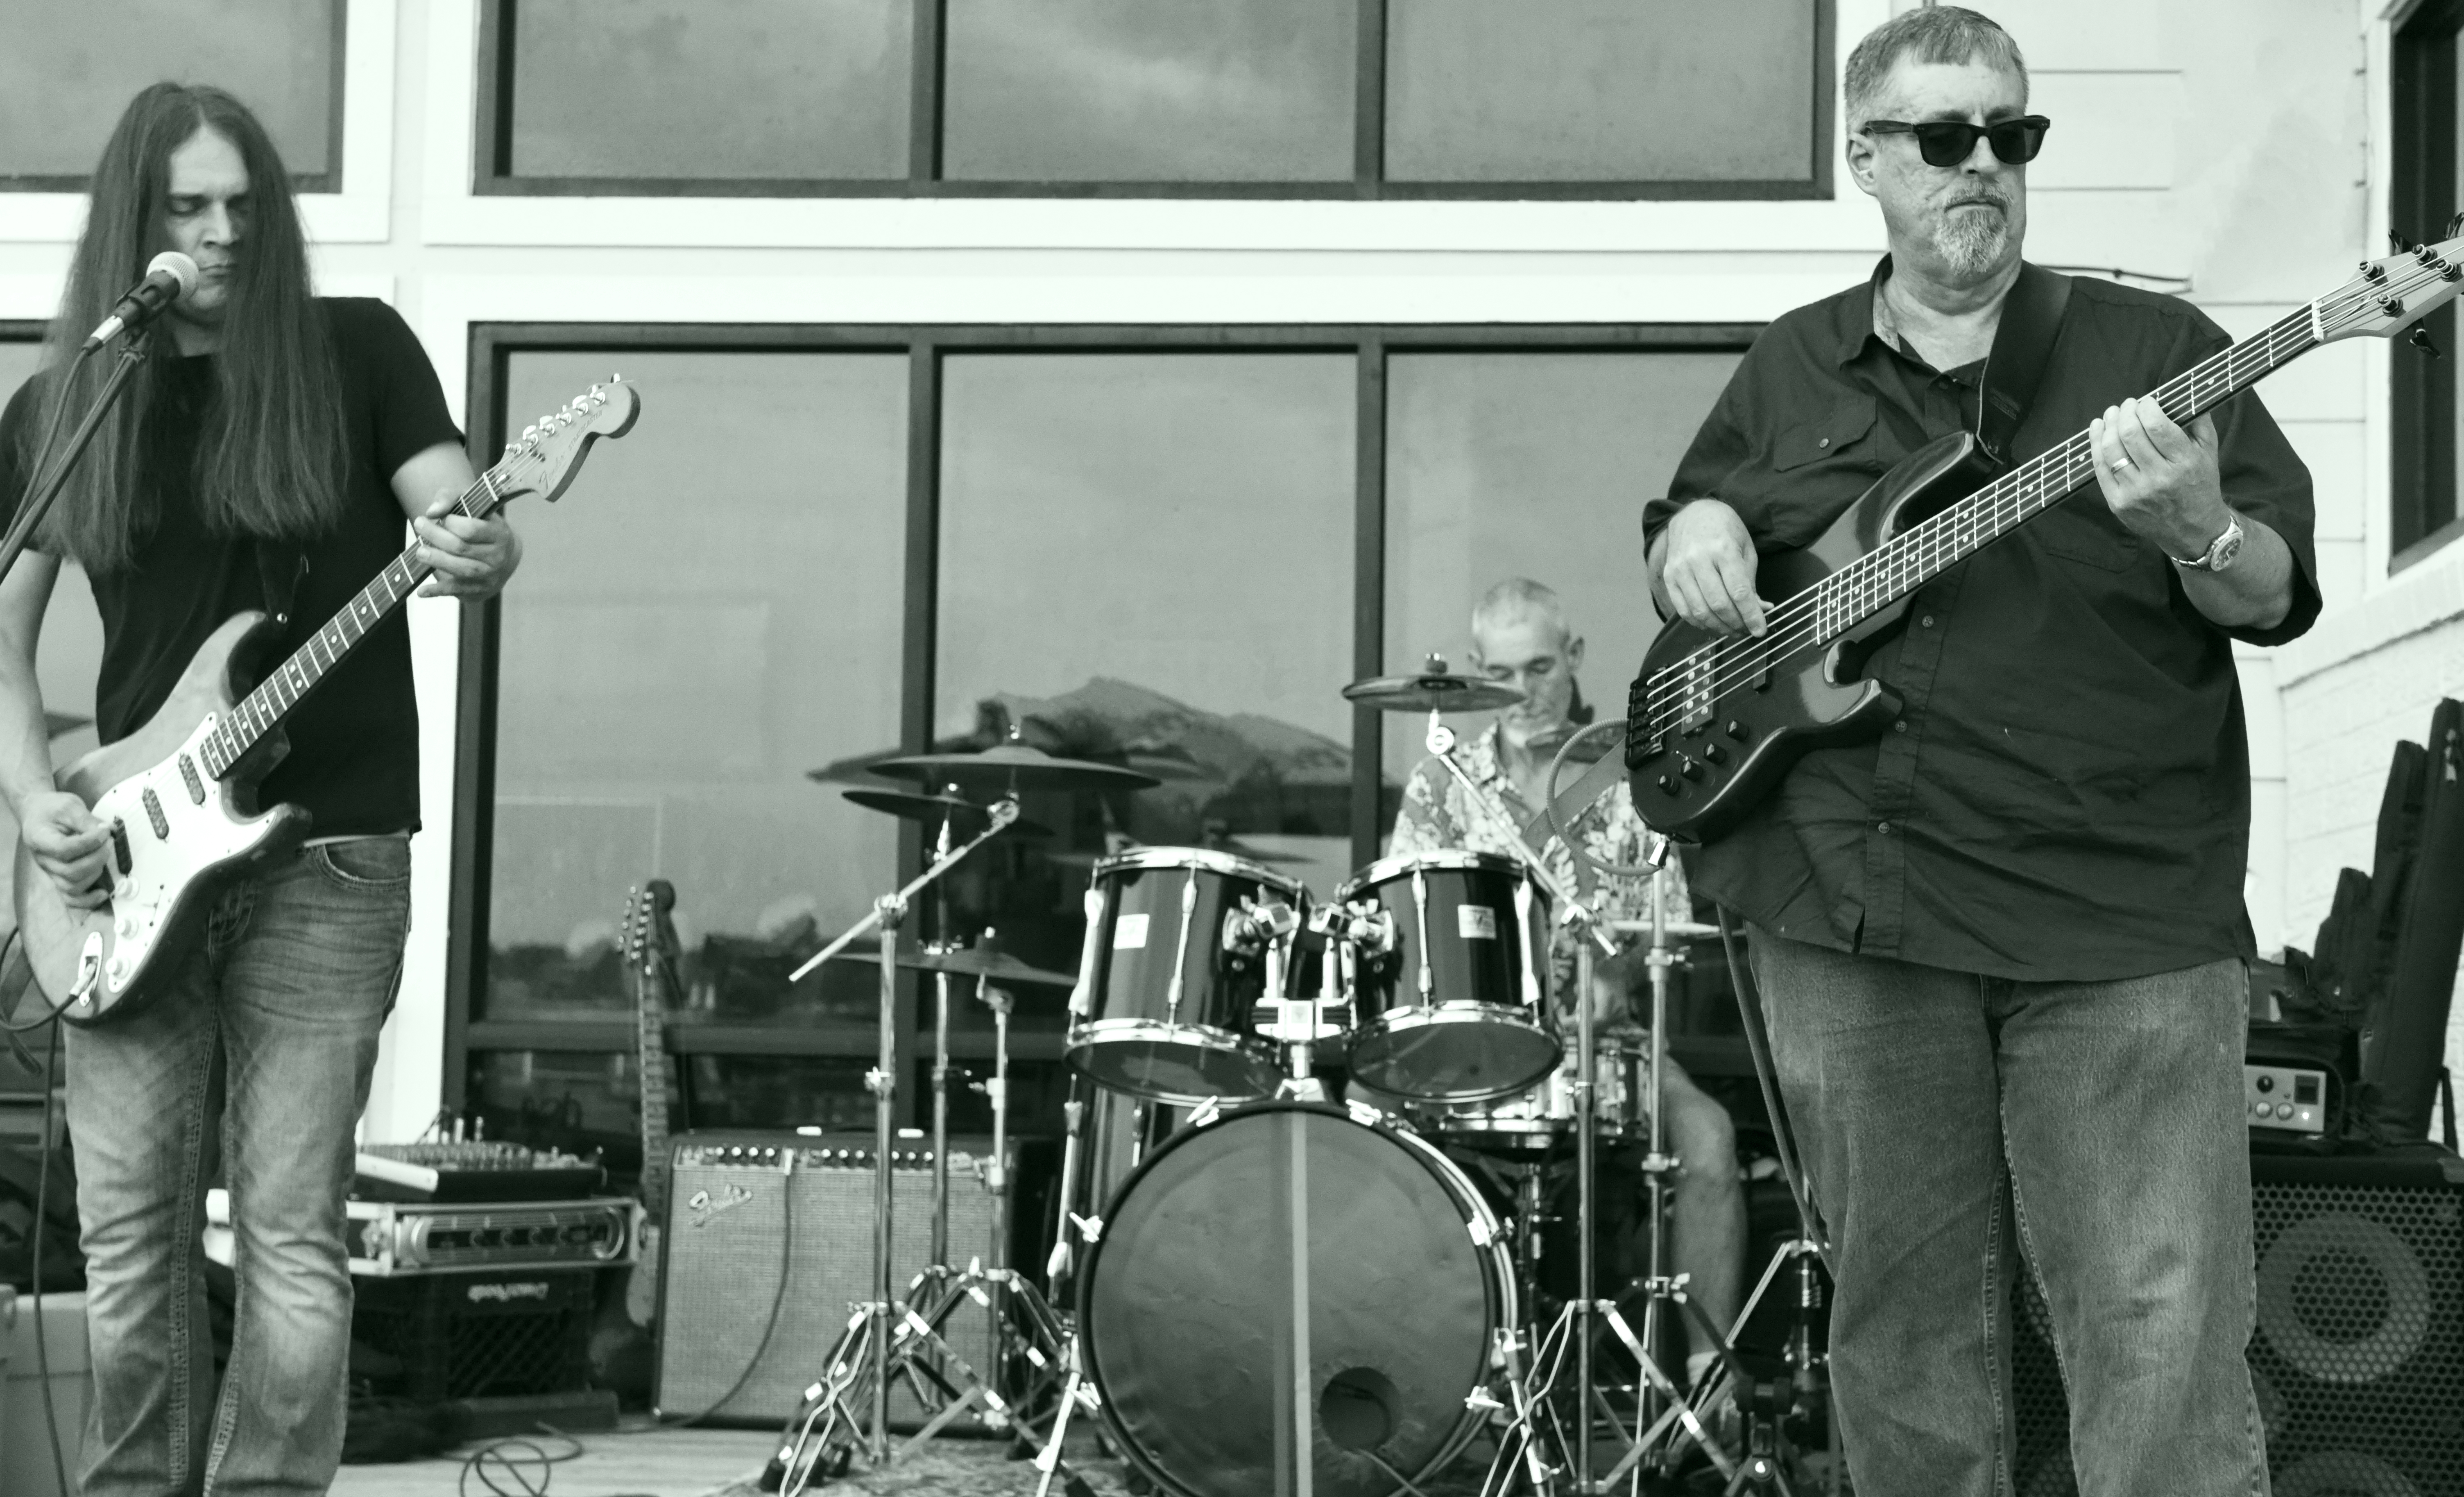 James Henry Band